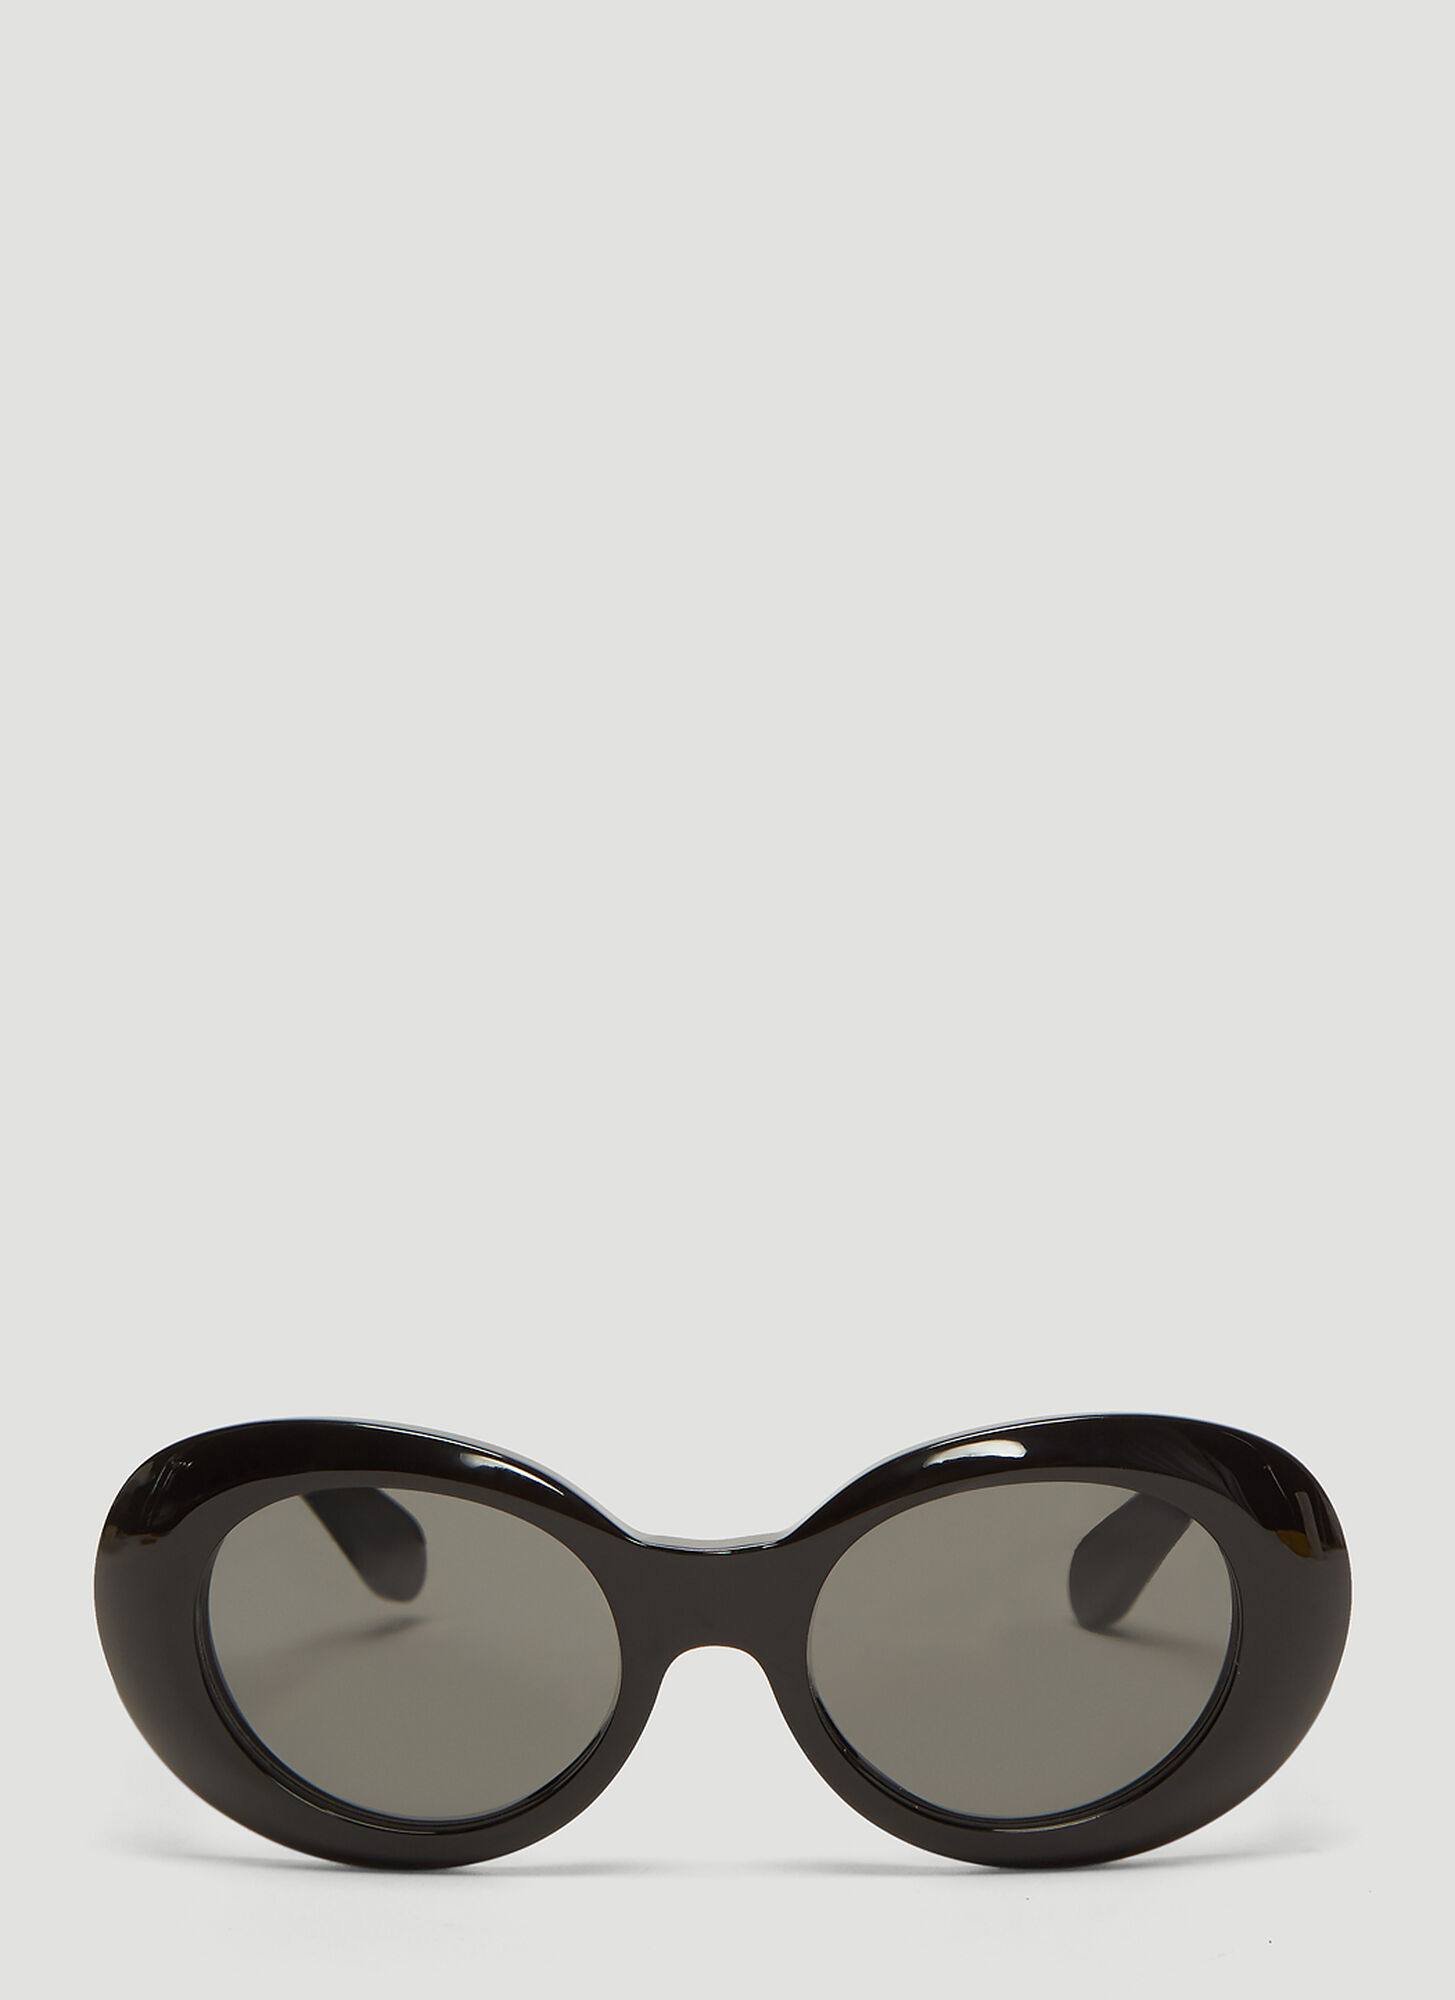 Acne Studios Mustang Sunglasses in Black